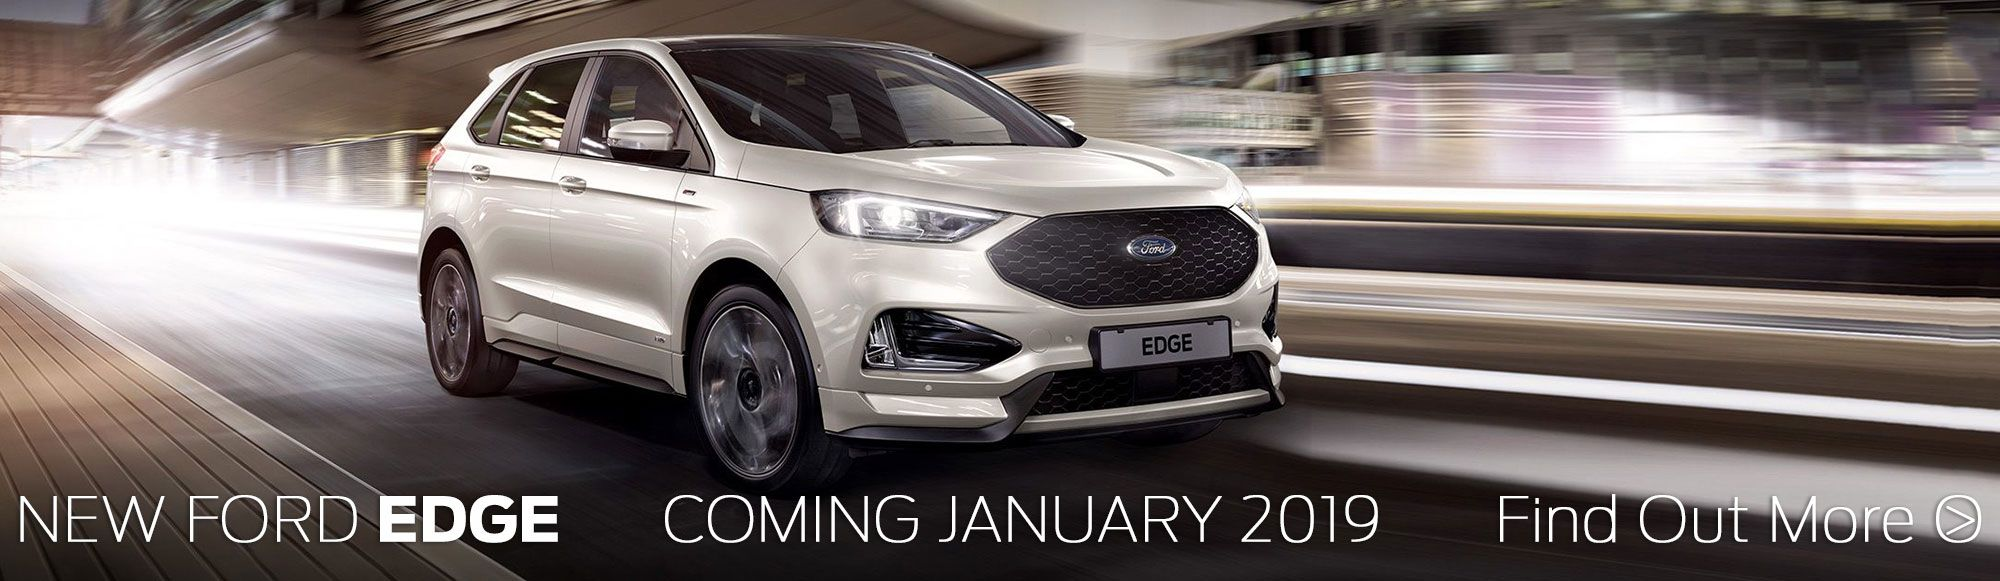 New ford edge coming january 2019